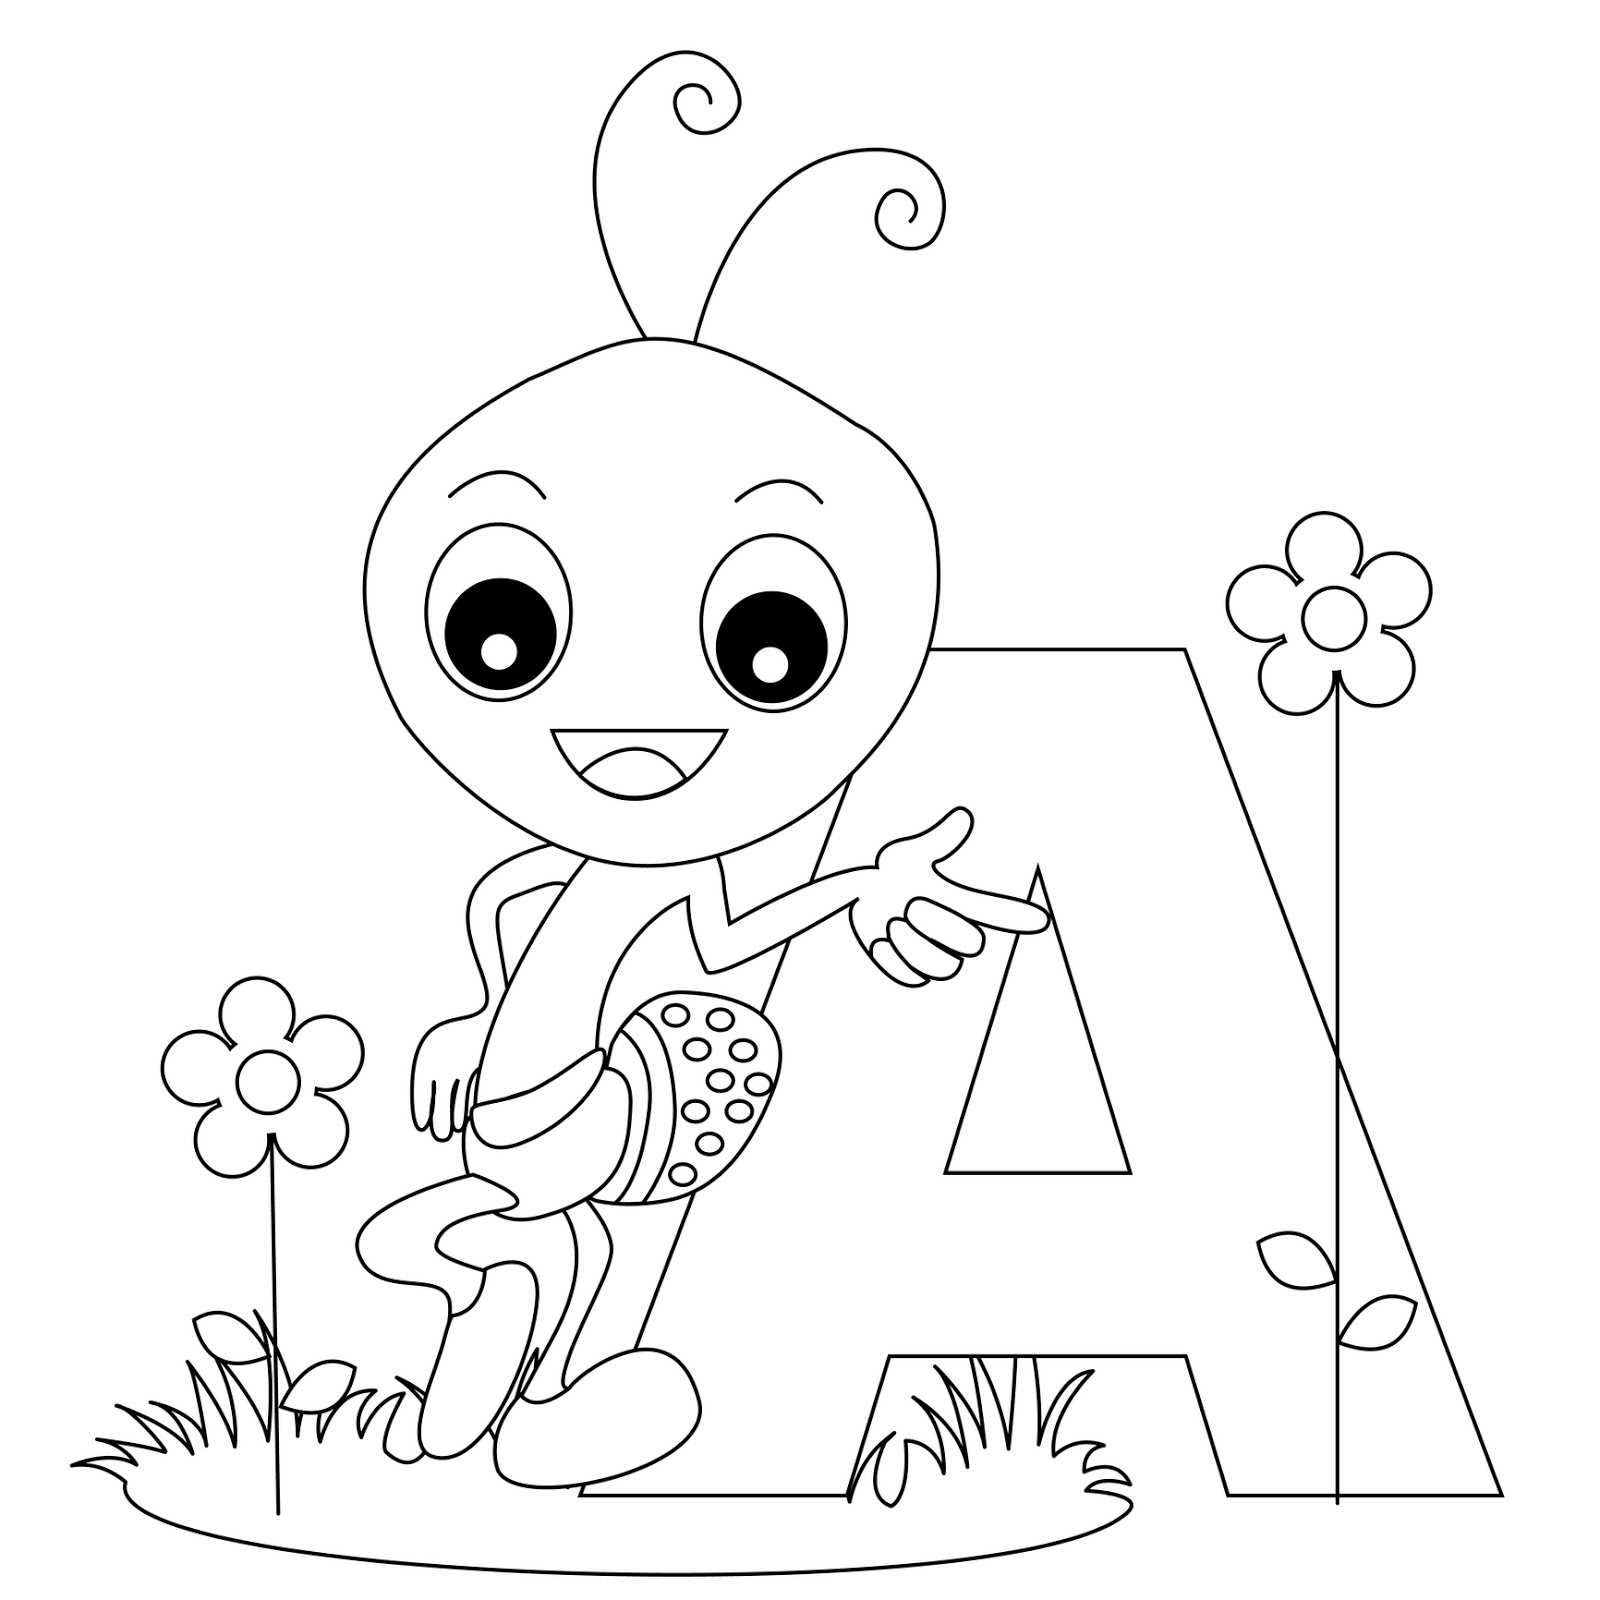 Coloring Pages For Alphabet : Animal alphabet letter a coloring child